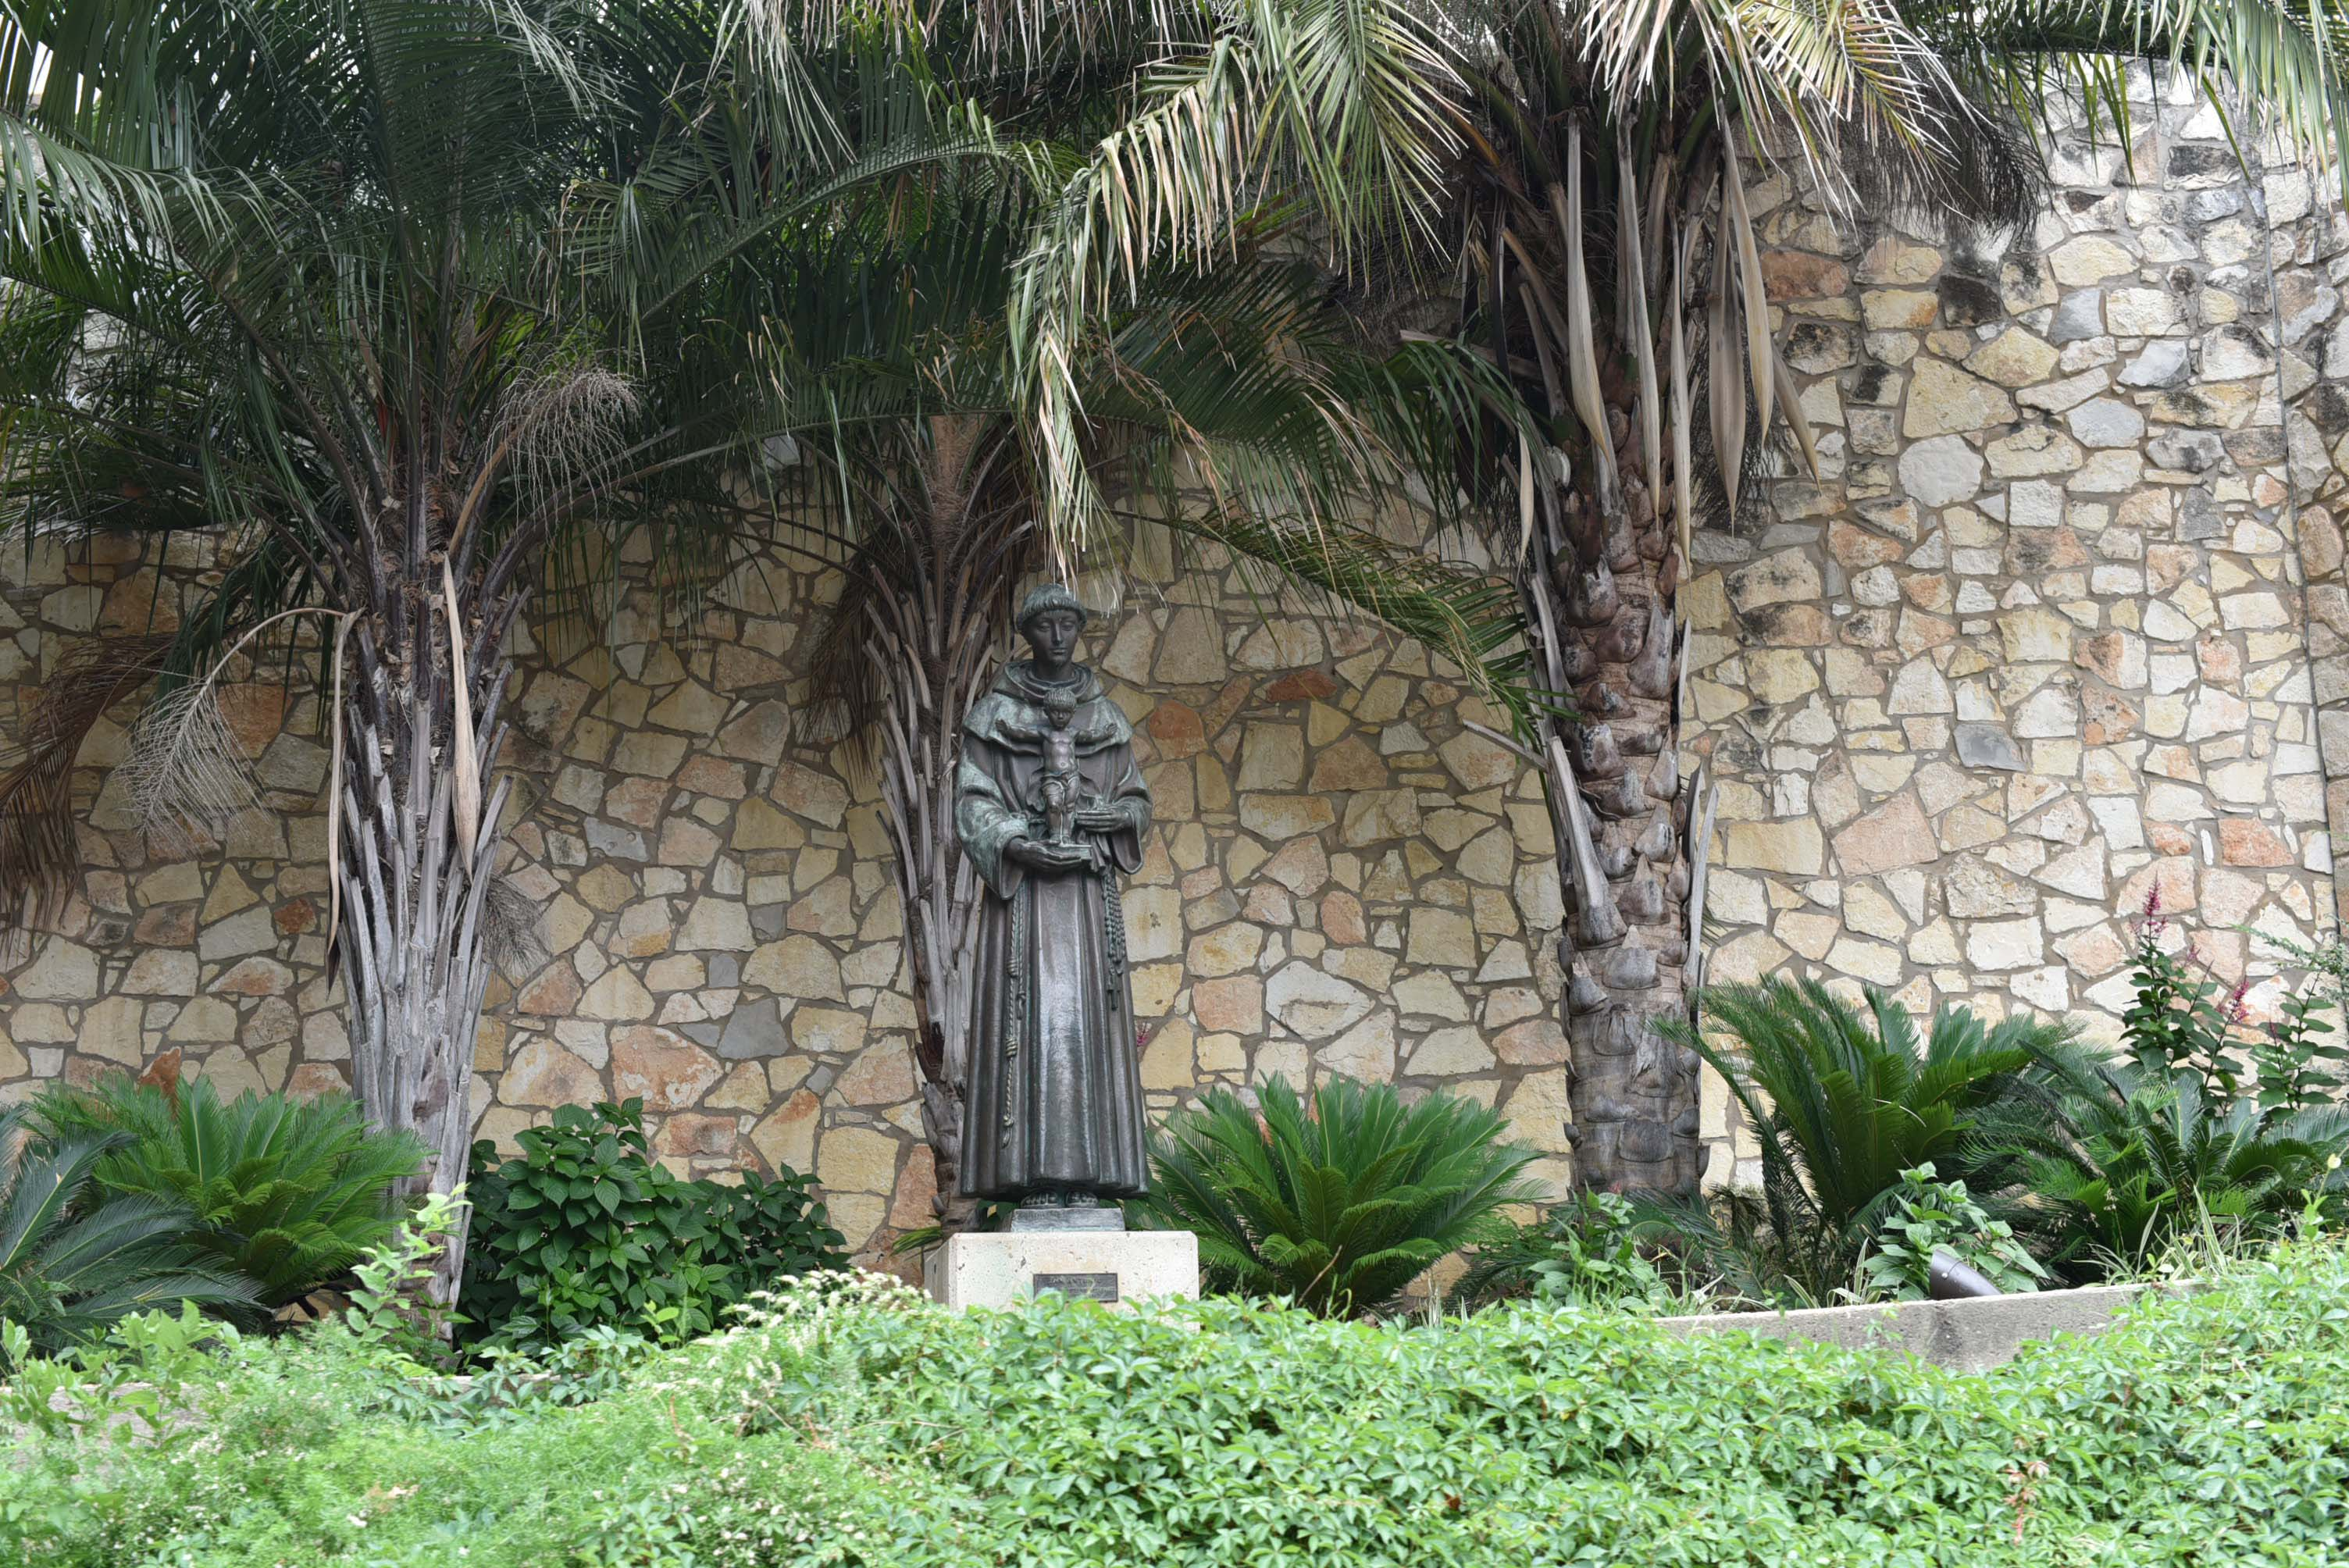 St.Anthony of Padua statue in San Antonio : See the post for planning a weekend trip to San Antonio